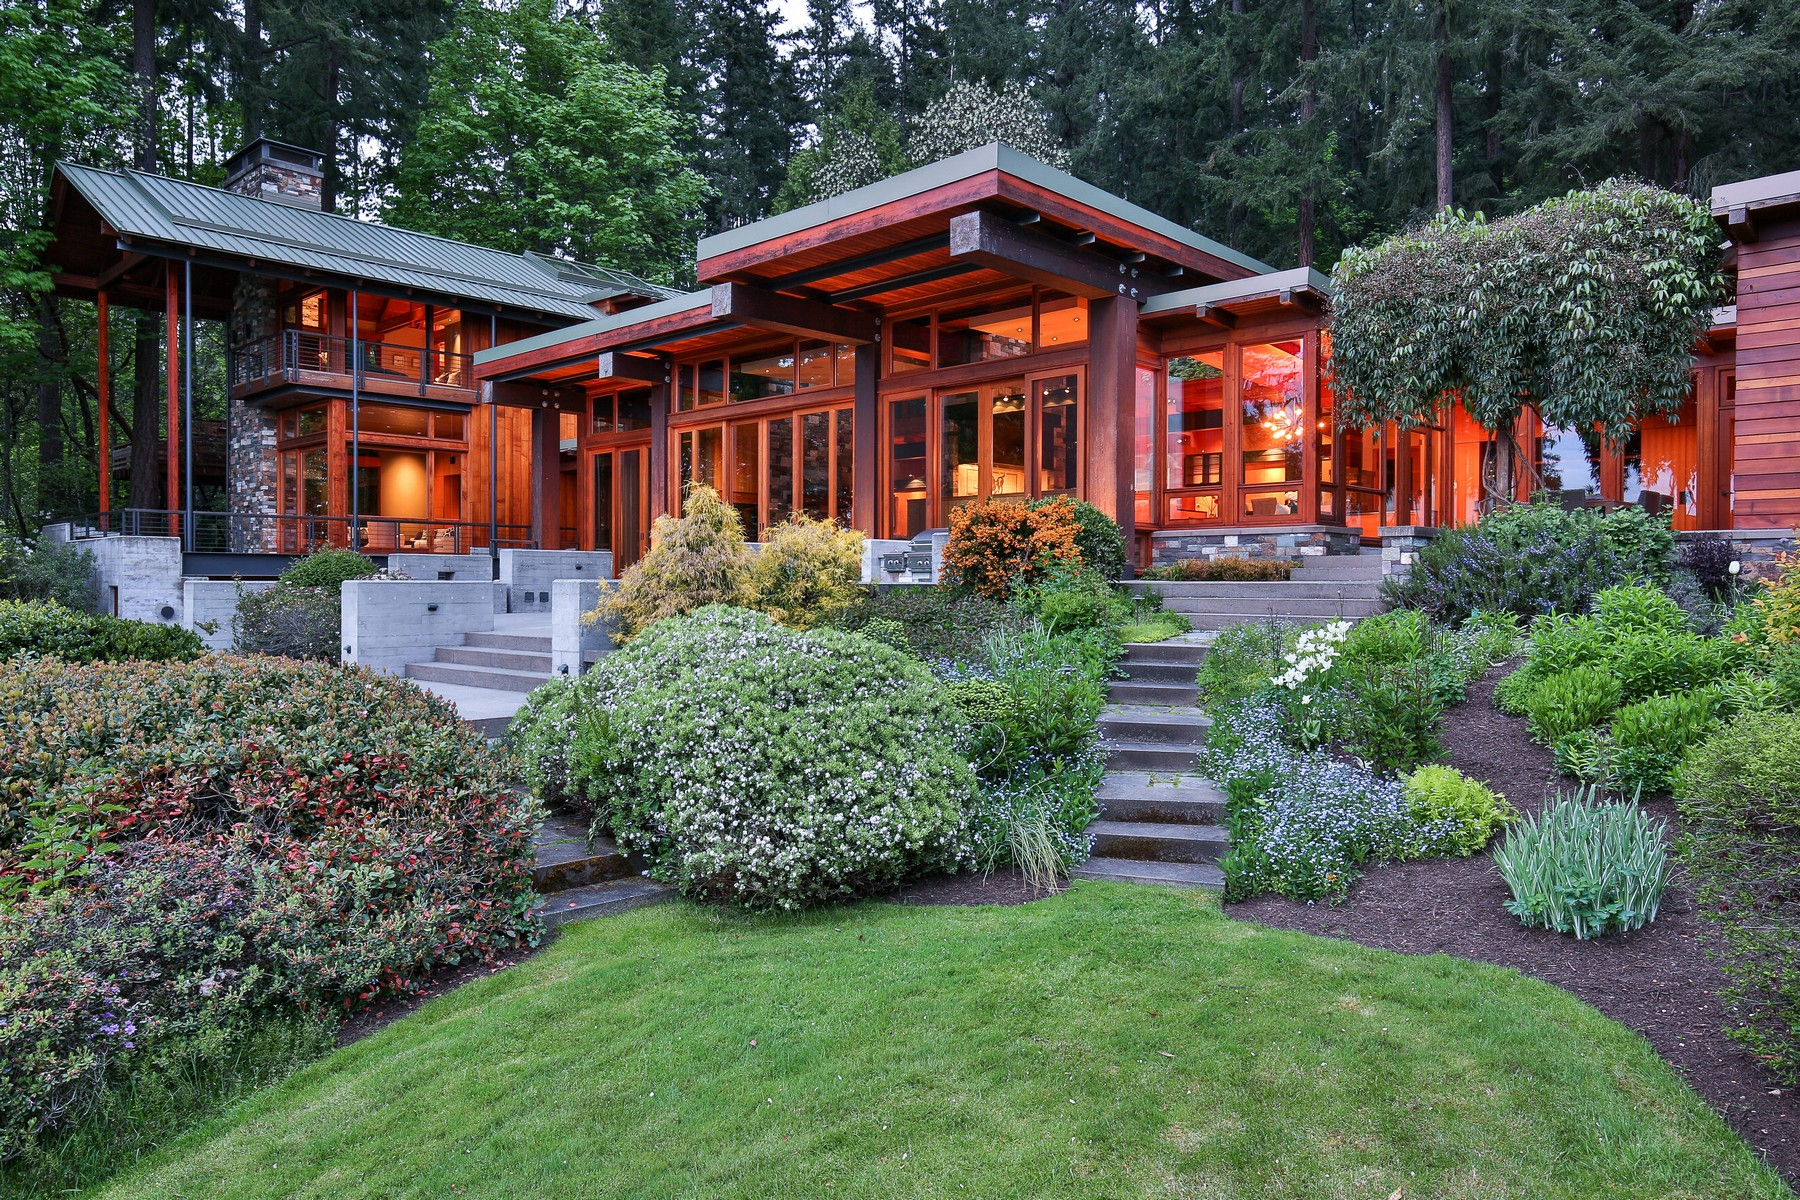 獨棟家庭住宅 為 出售 在 Picturesque waterfront estate 8888 Res5/3 Undisclosed Bainbridge Island, 華盛頓州 98110 美國